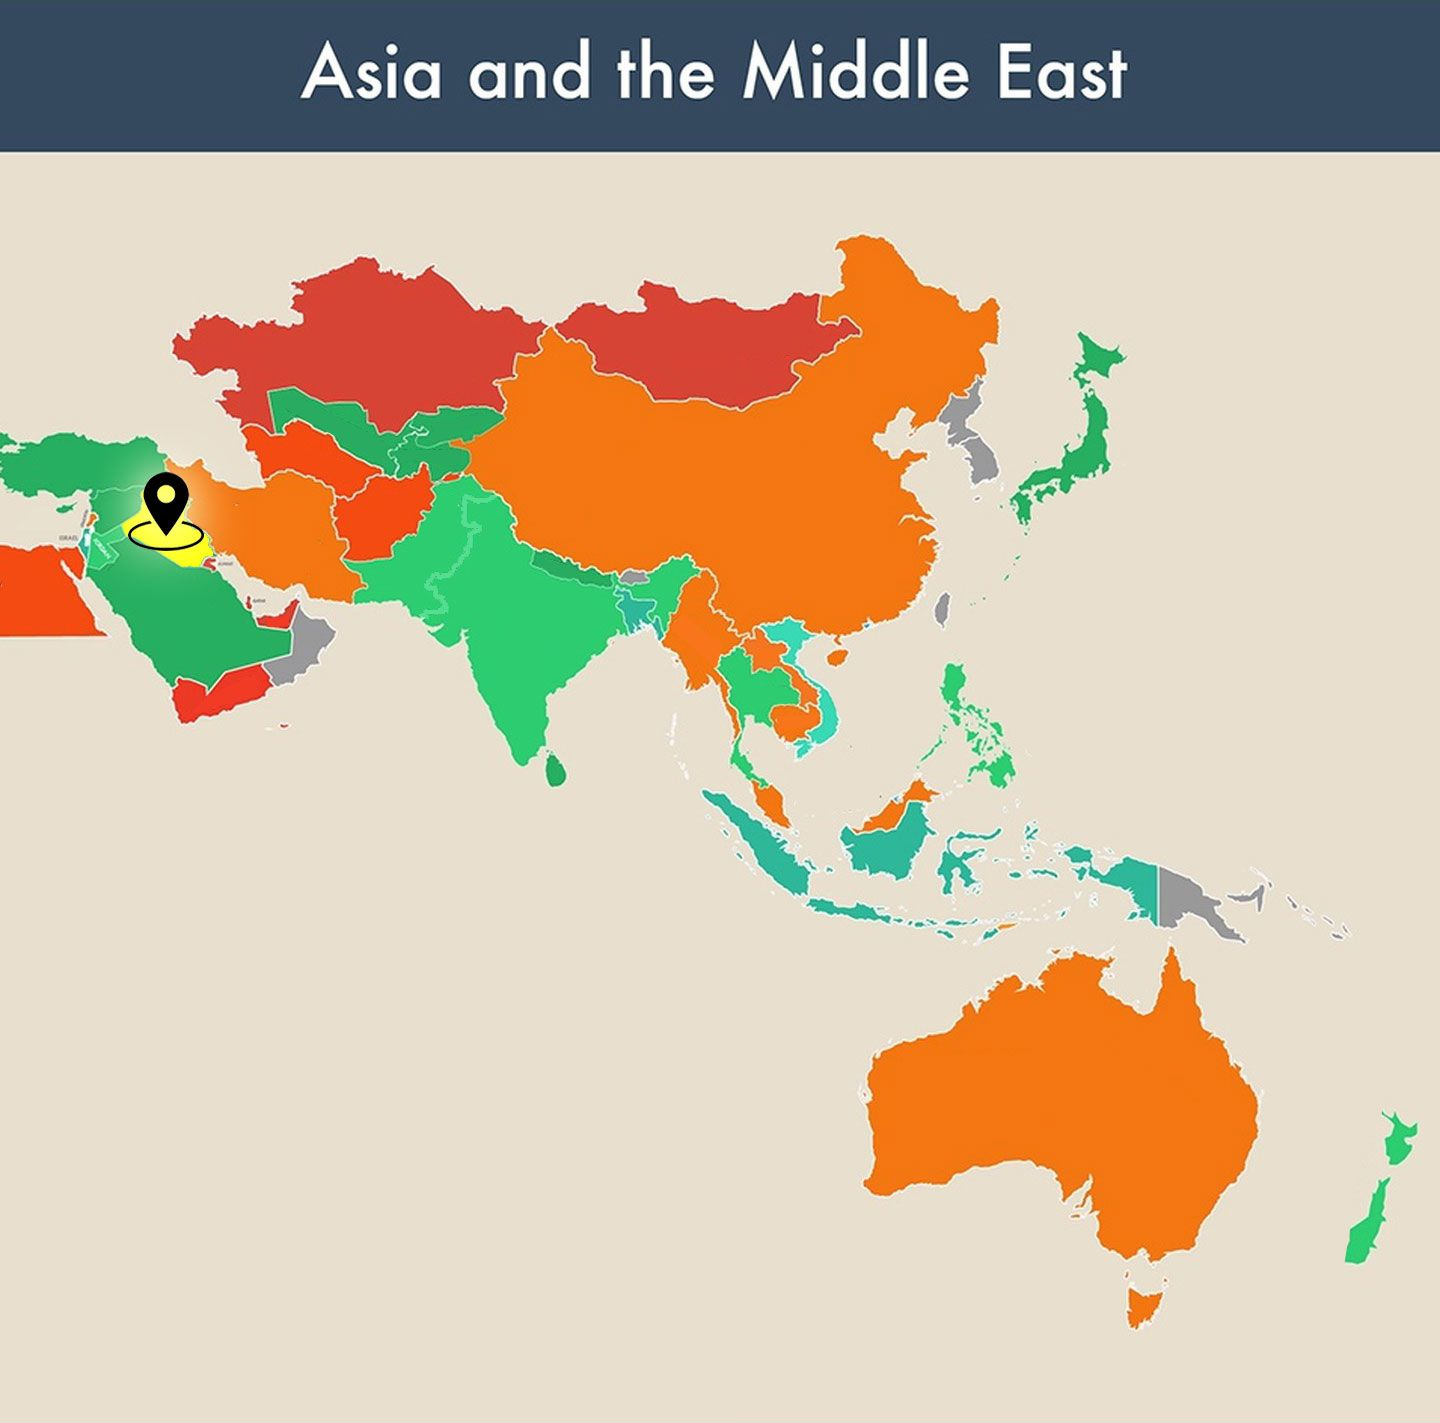 countries of the world empty map - iraq image